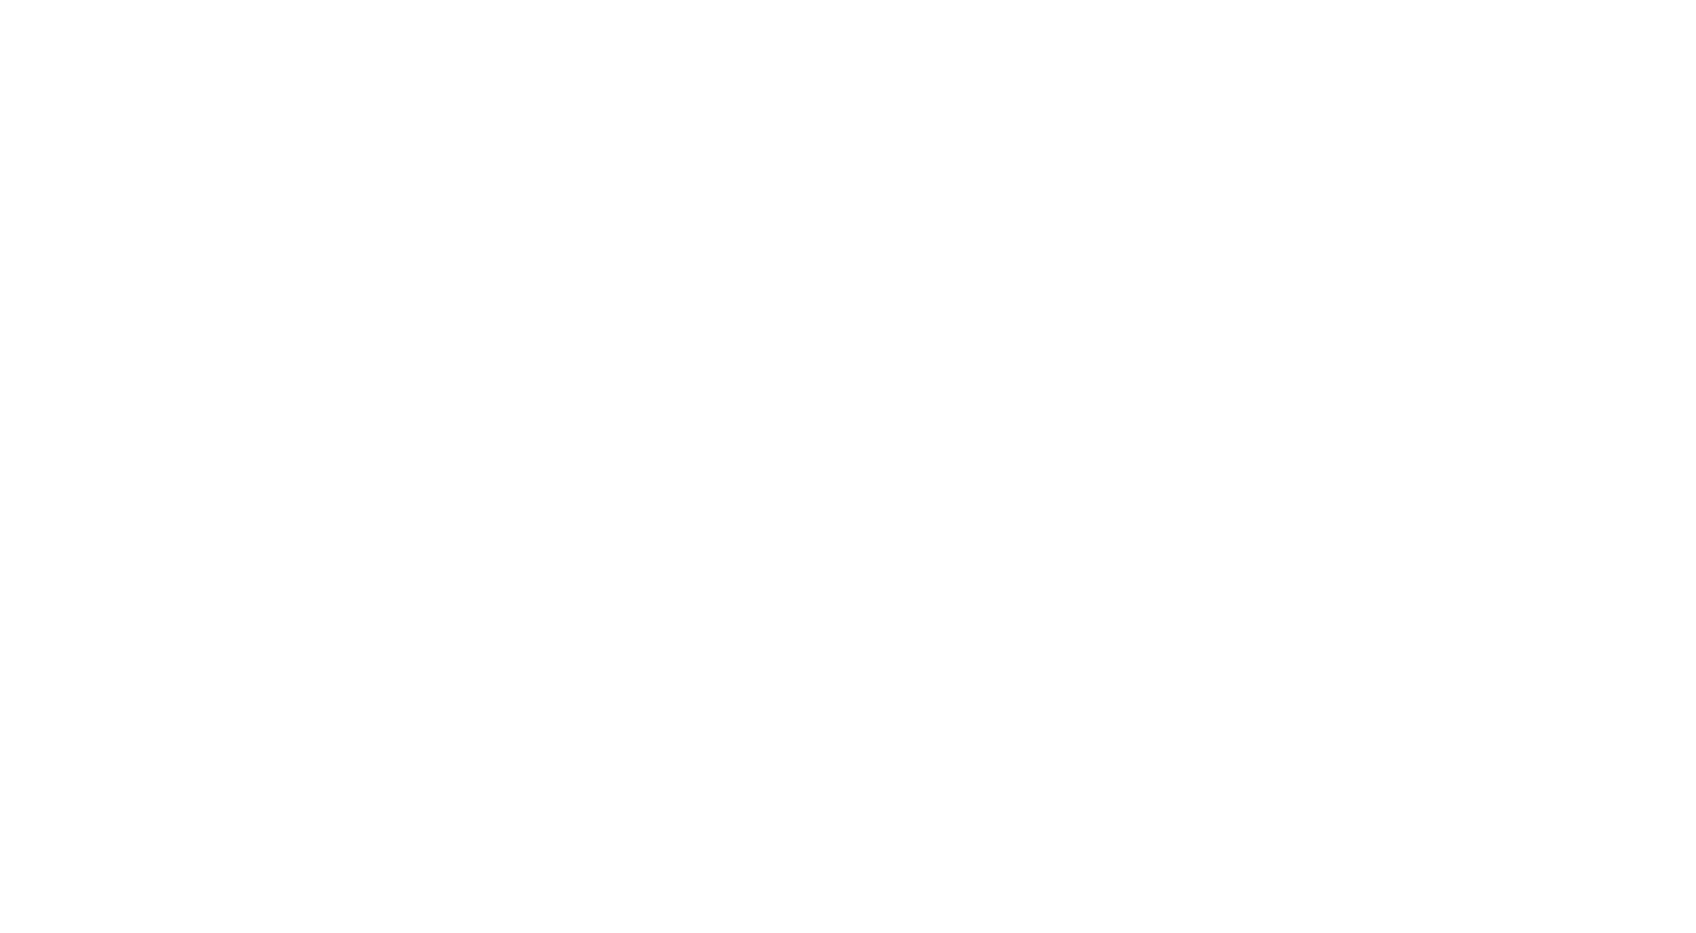 Realtor | Equal Housing Opportunity